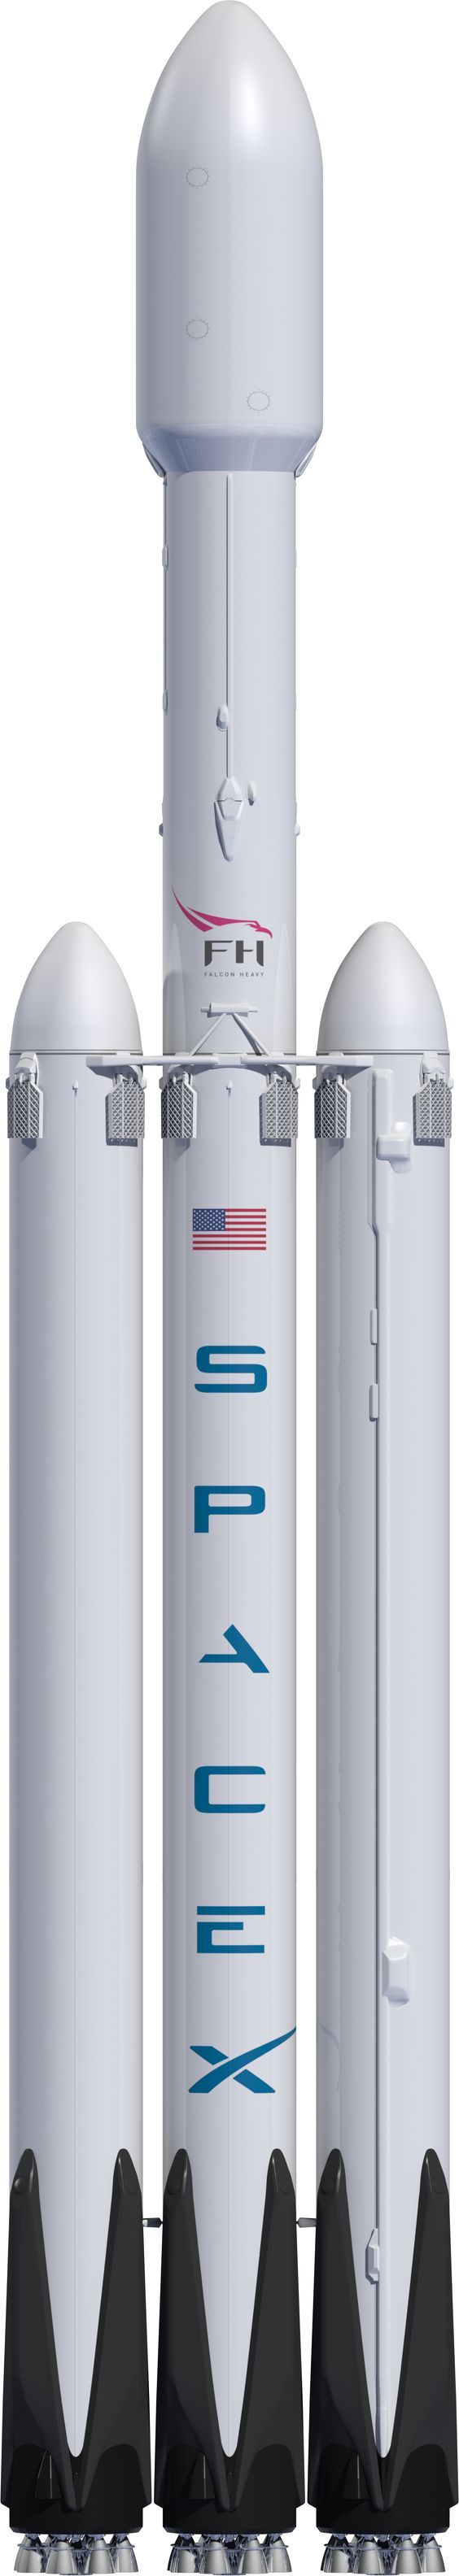 SpaceX: The World'sMost Powerful Rocket--27 engines!!!